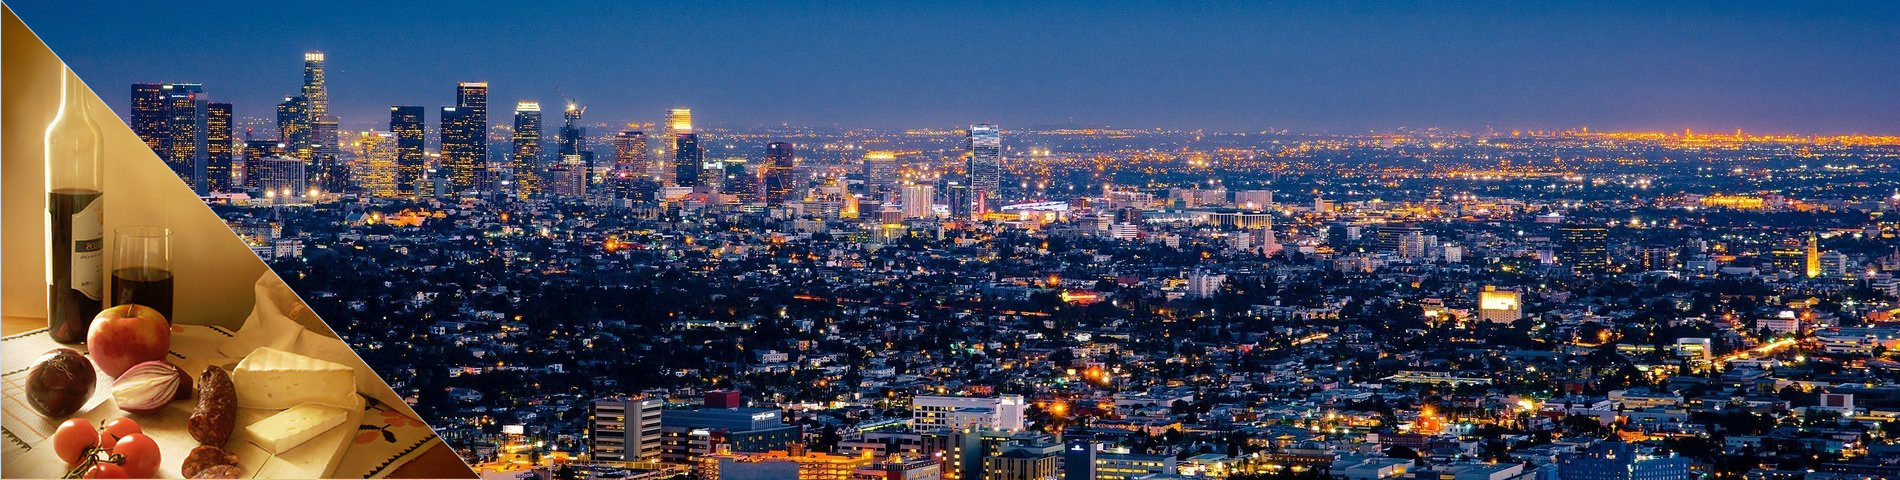 Los Angeles - Inglese & Cultura